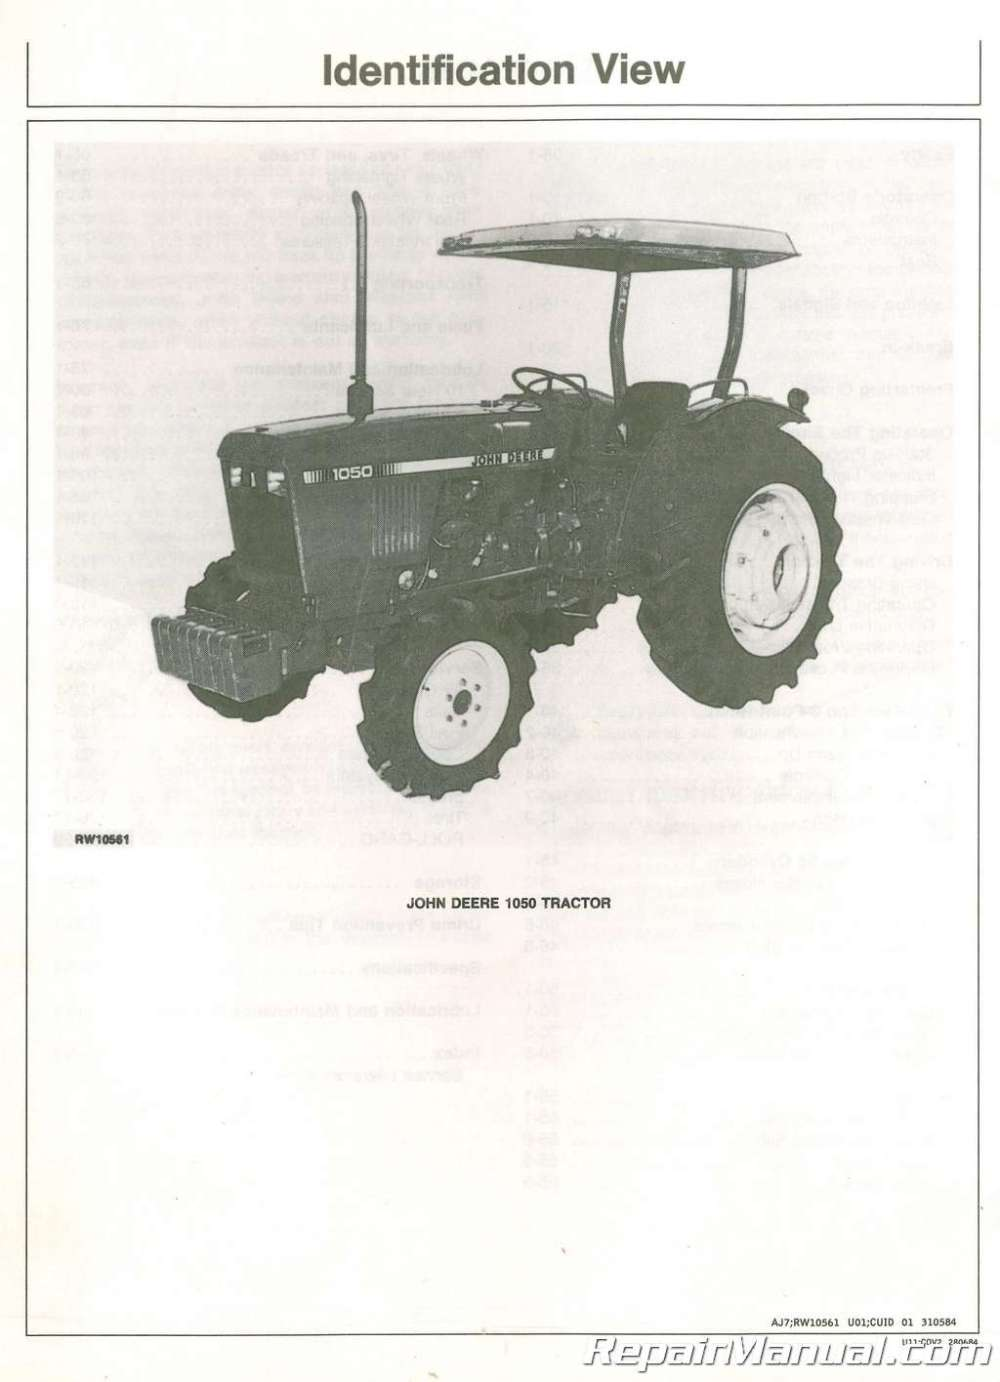 medium resolution of turf tractor technical repair shop service manual john deere out of stars 1 950 diagrams for tractors john deere 850 fast service and 100 secure